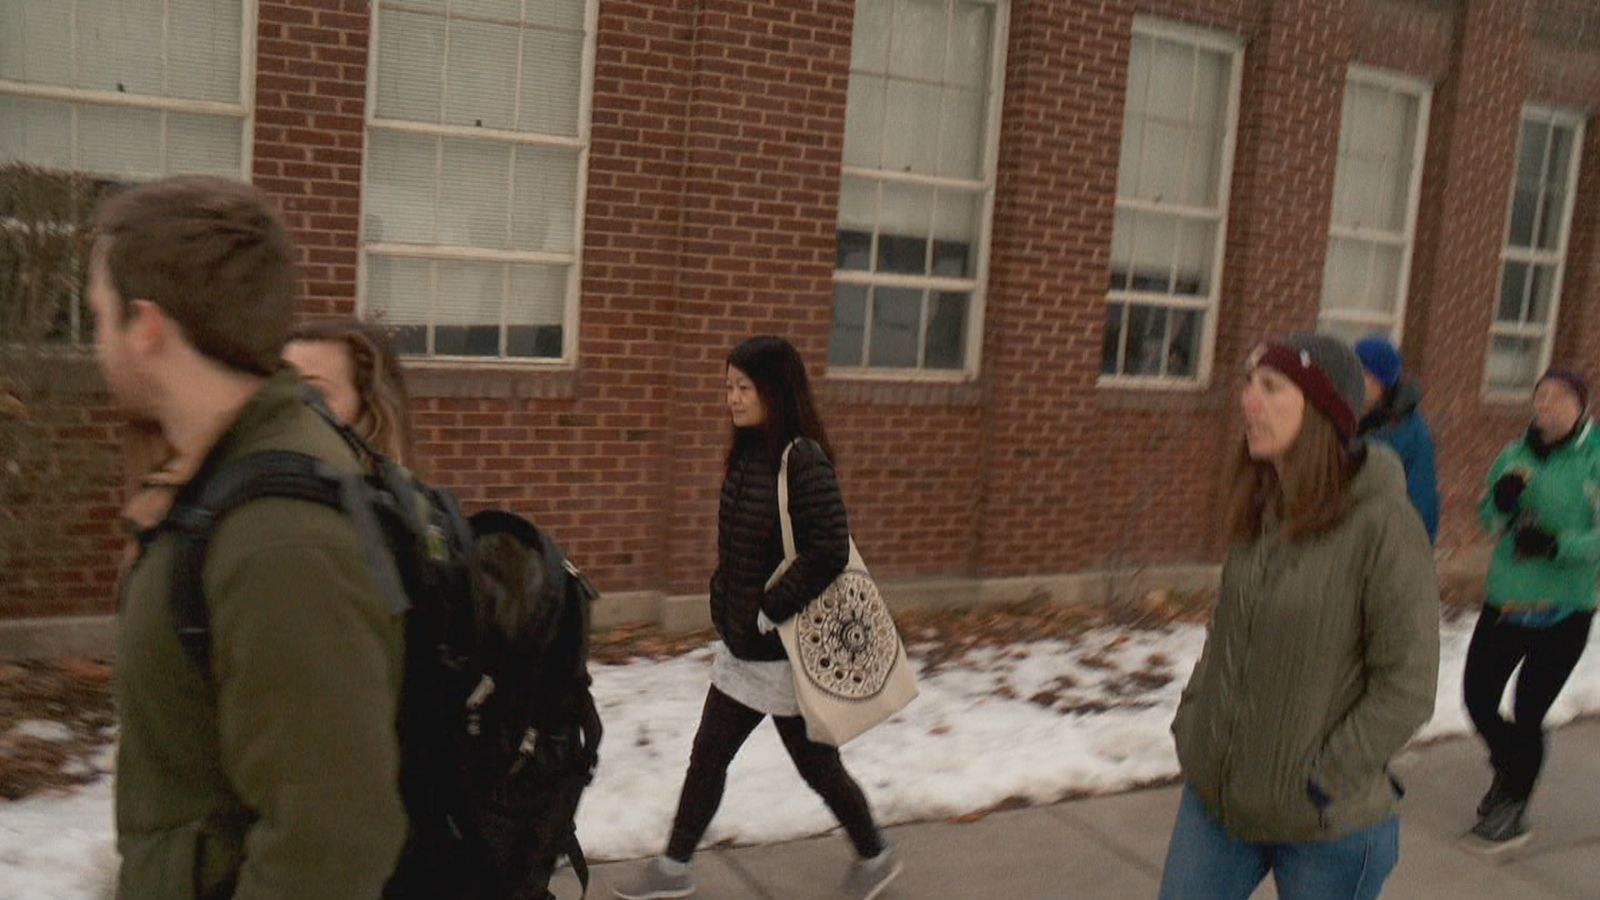 Approximately 100 people, mostly students and staff, marched through the campus of Westminster College and the Sugar House neighborhood on the morning of Martin Luther King, Jr. Day. (Photo: KUTV)